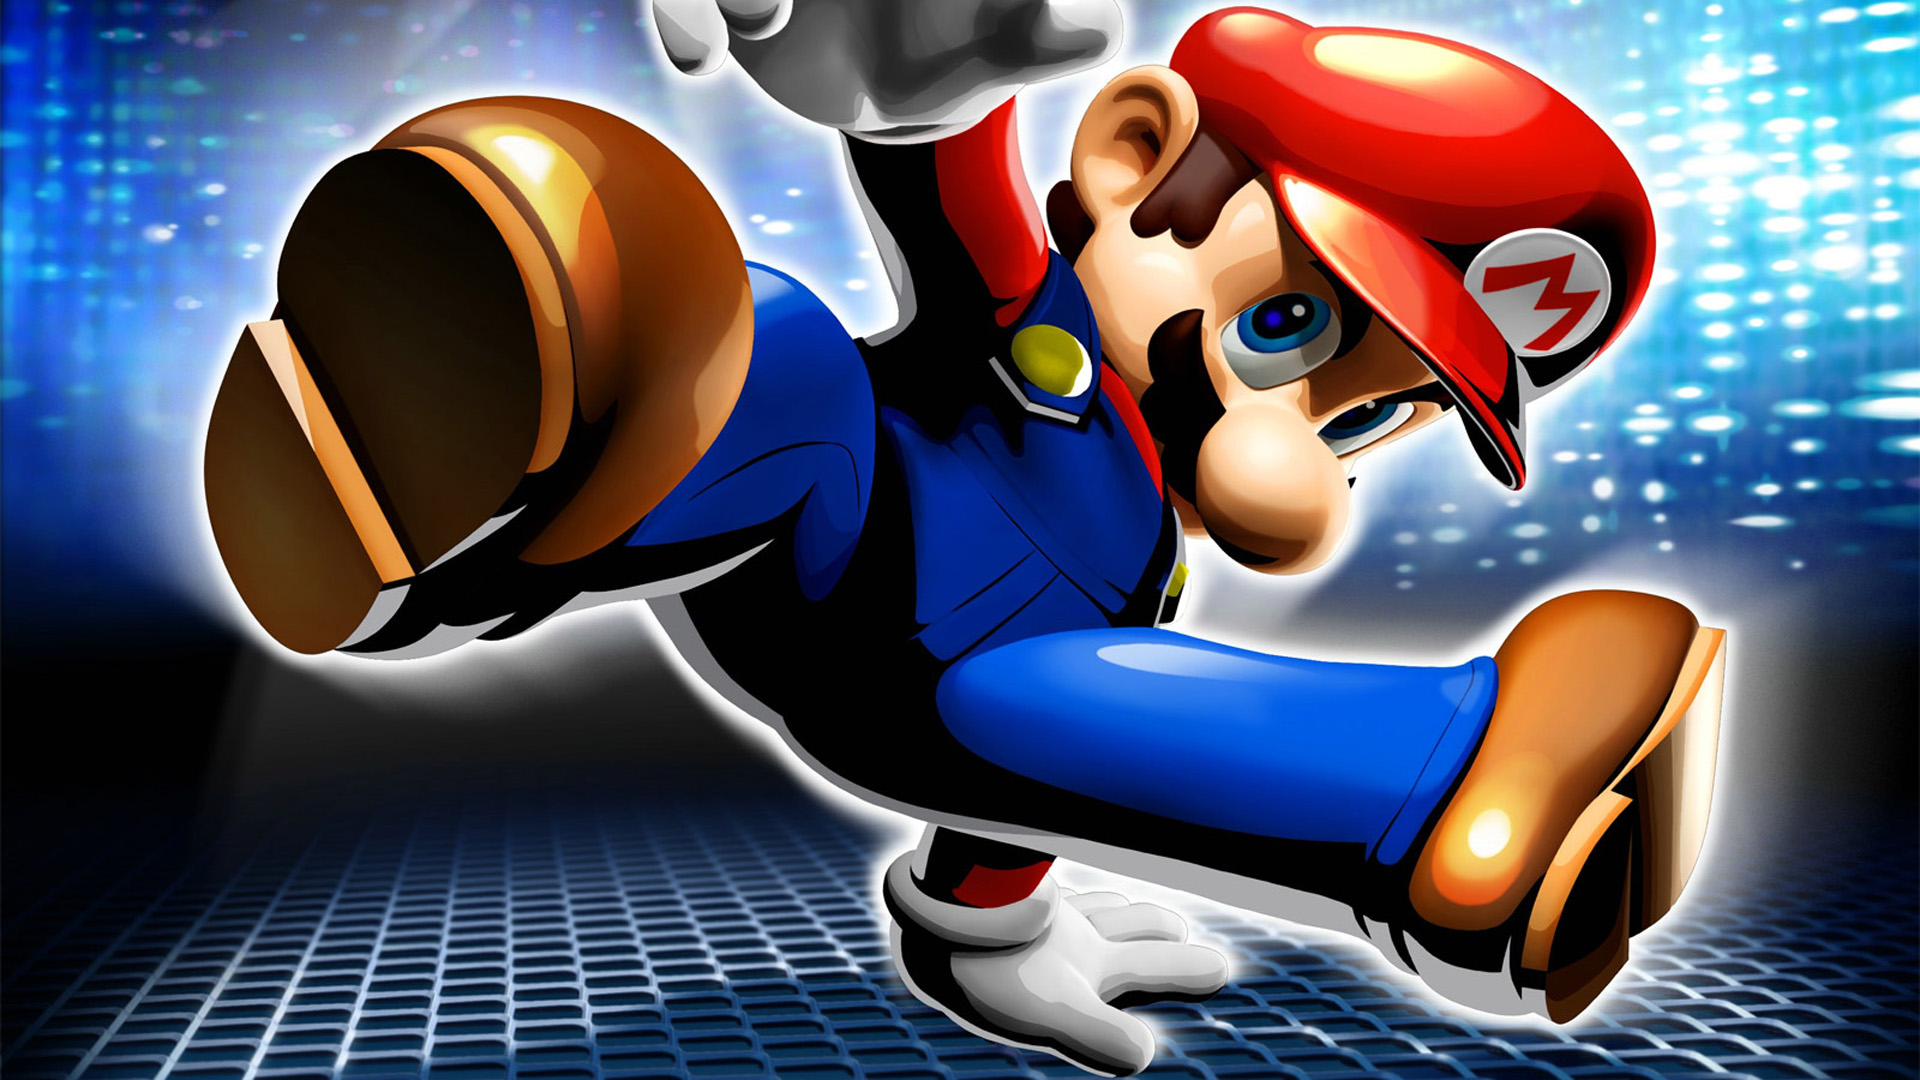 Papel Parede Mario ~ Wallpaper Mario HD Gratuità Télécharger sur NGN Mag